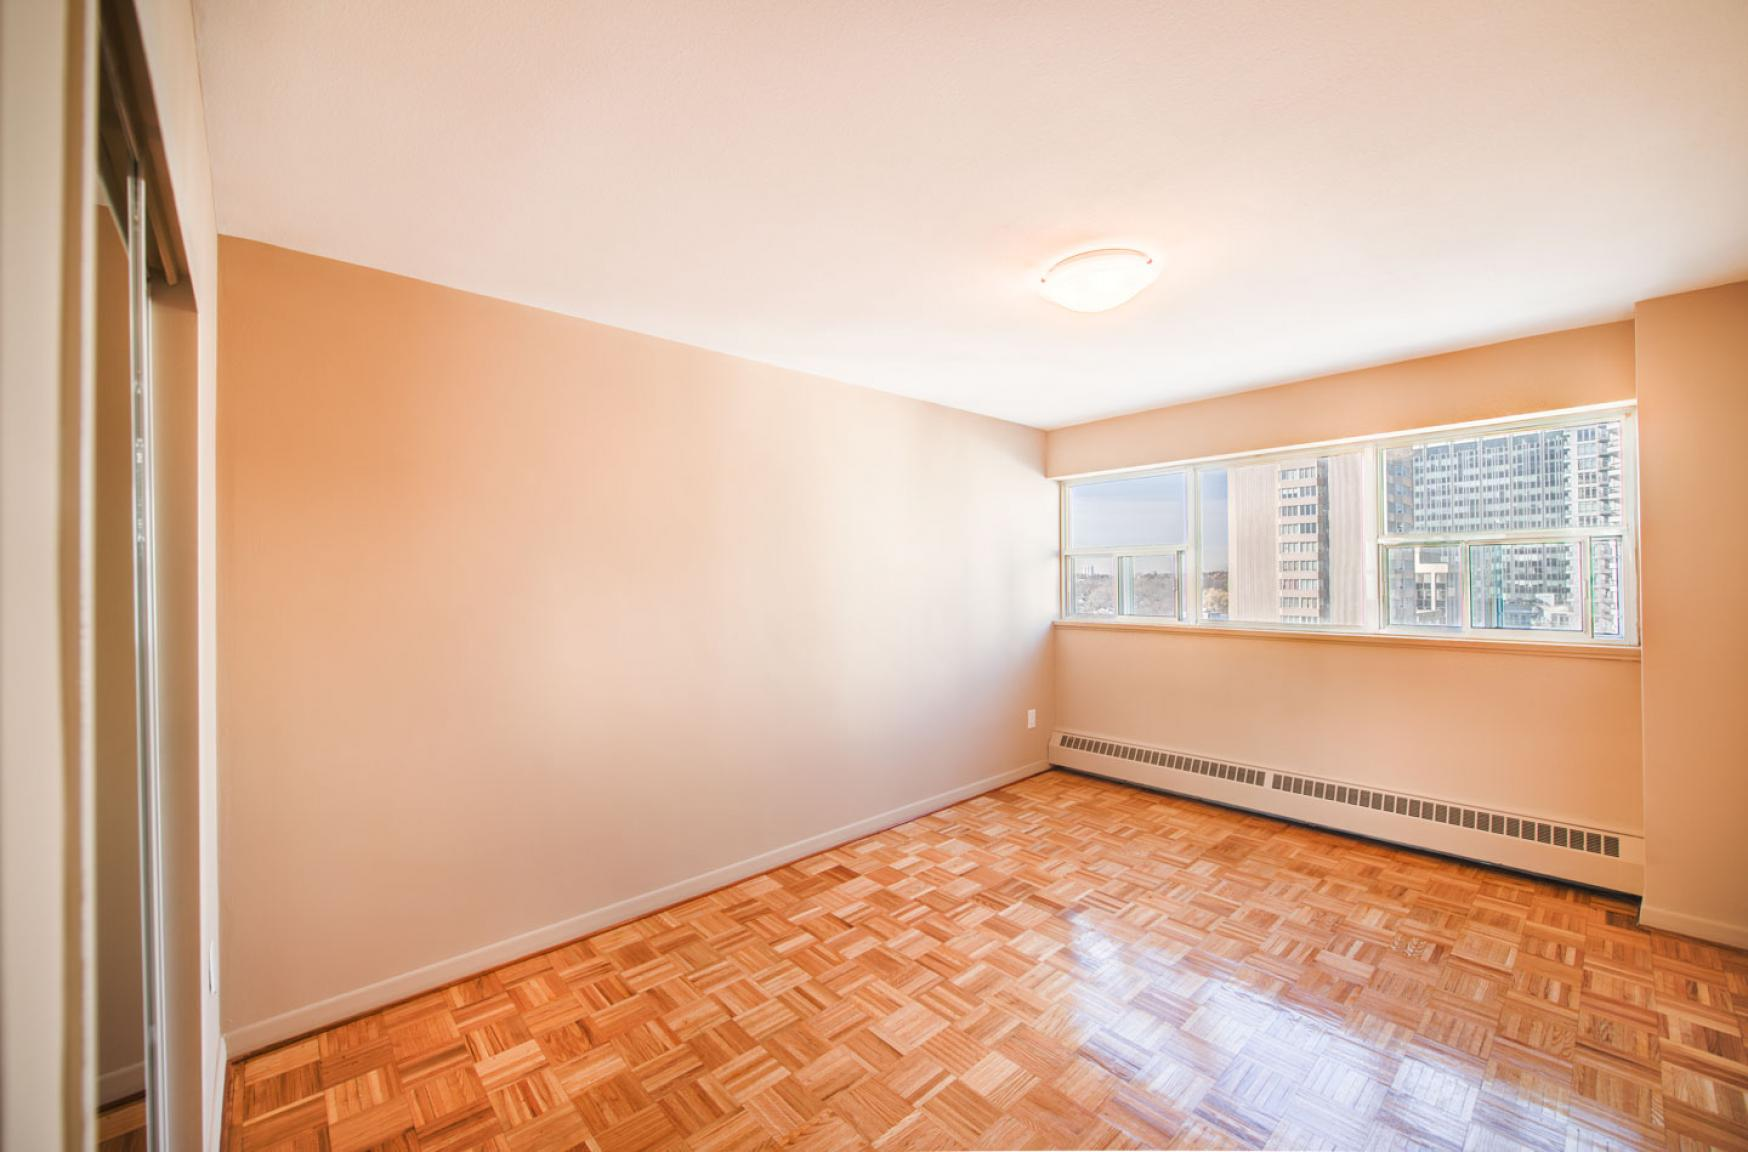 1 bedroom Apartments for rent in Toronto at Dunfield Tower - Photo 18 - RentersPages – L138879